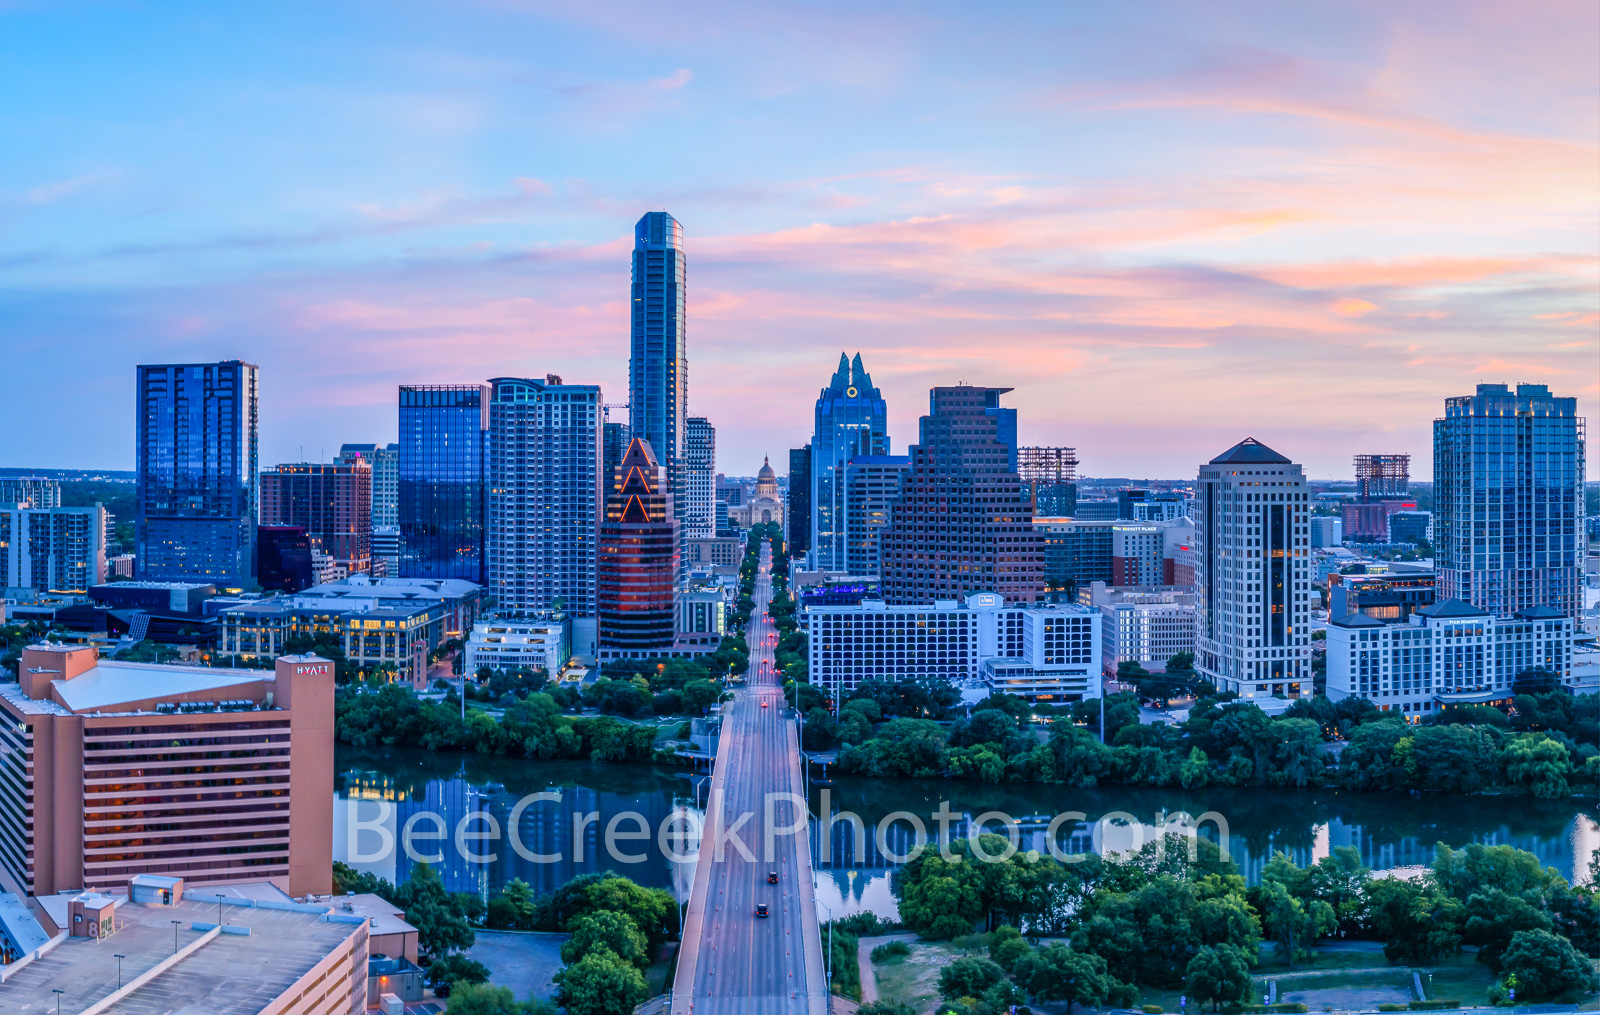 austin skyline, austin texas sunrise, texas, sunrise,  austin tx, Austin, texas capitol, downtown austin, austin, city of austin, sunset, congress bridge, architecture, sunrise, pinks, yellow, purple,